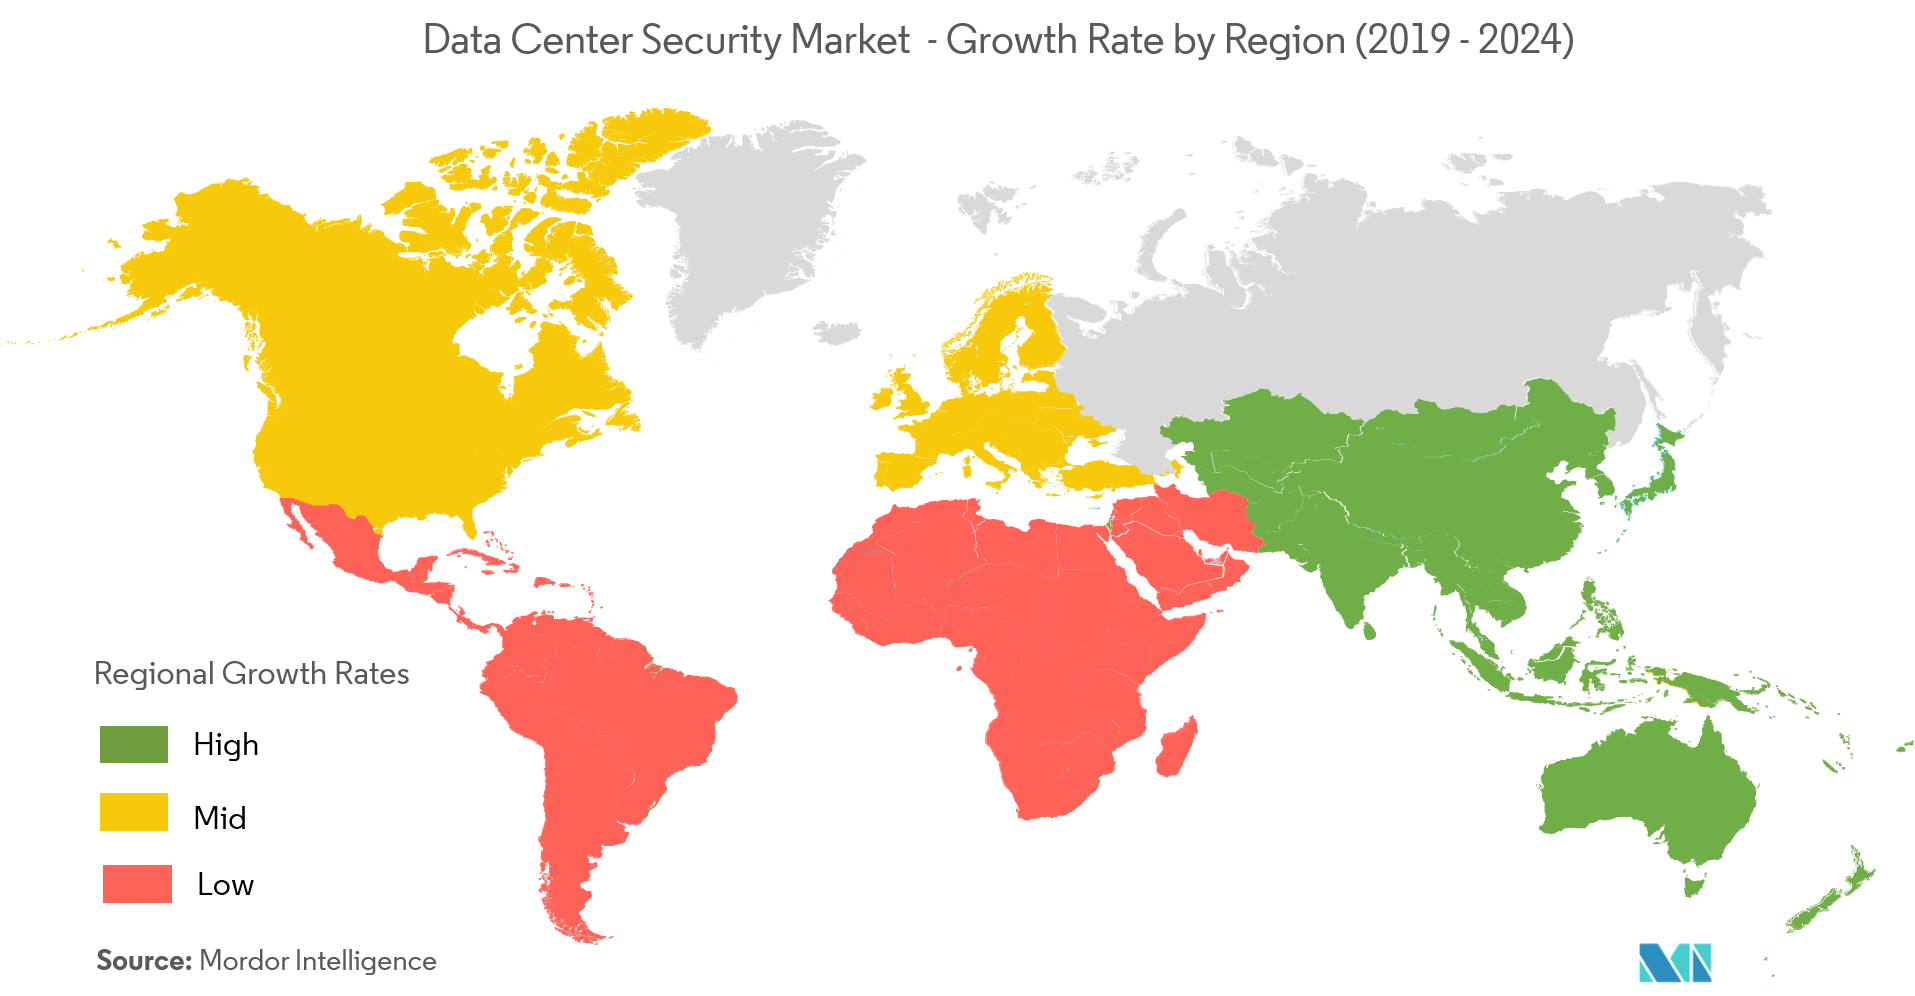 Data center security map